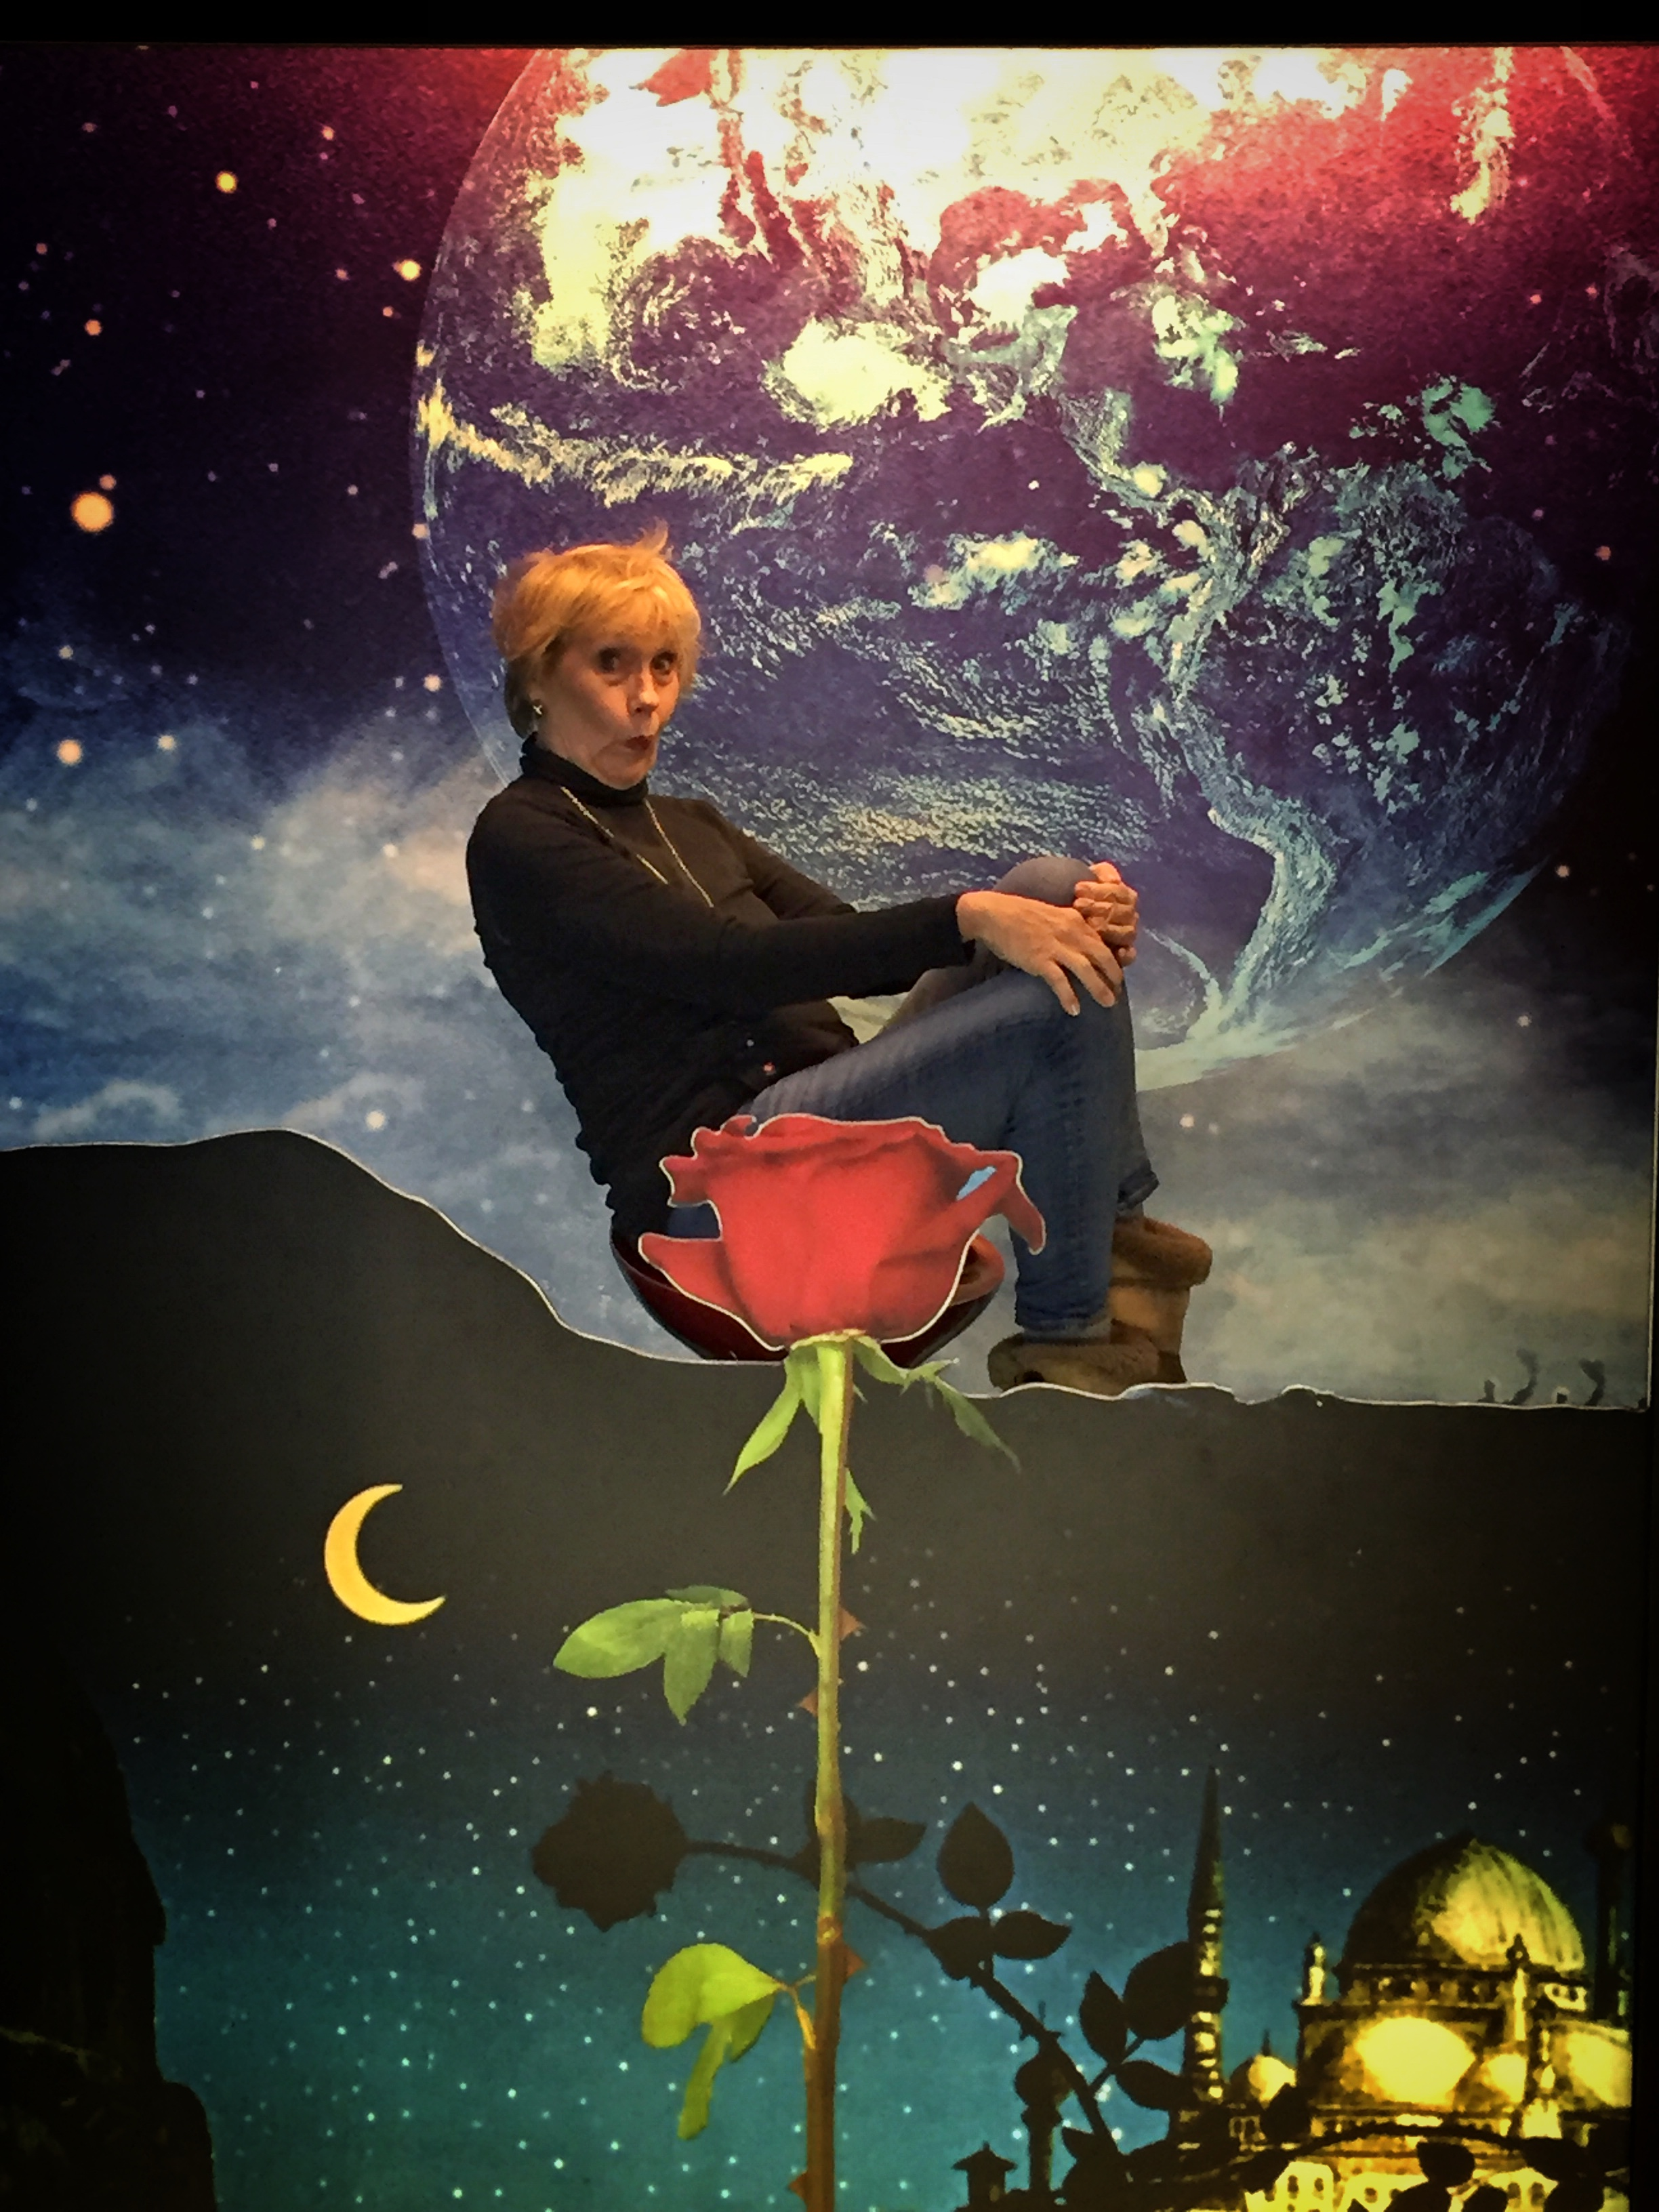 having (too much) fun on the moon rose